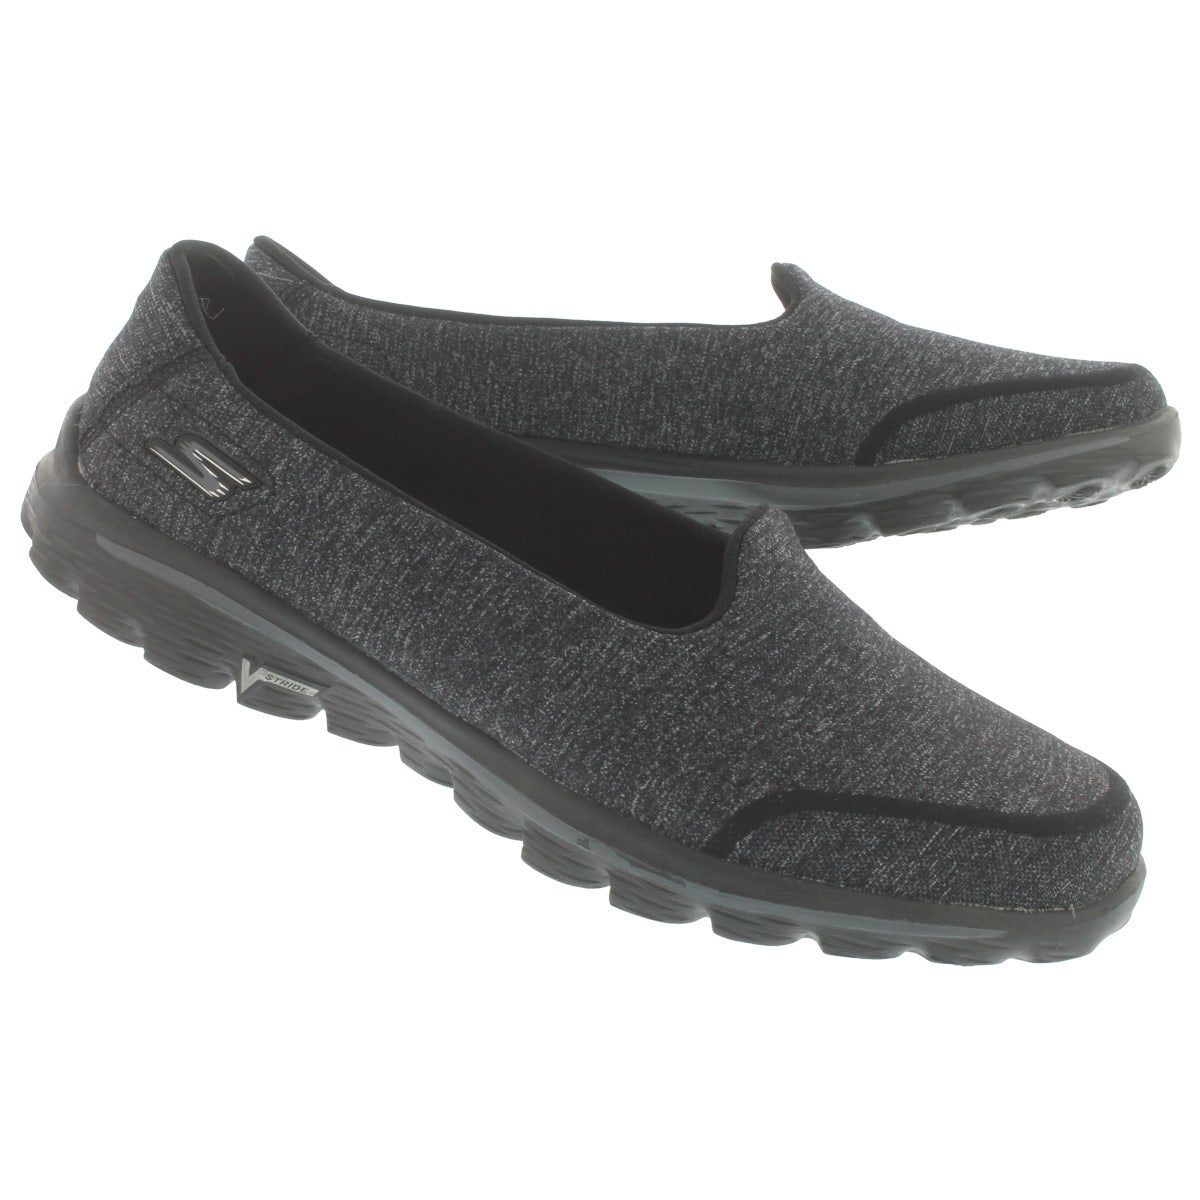 Lds GOwalk 2 Bind blk slipon shoe